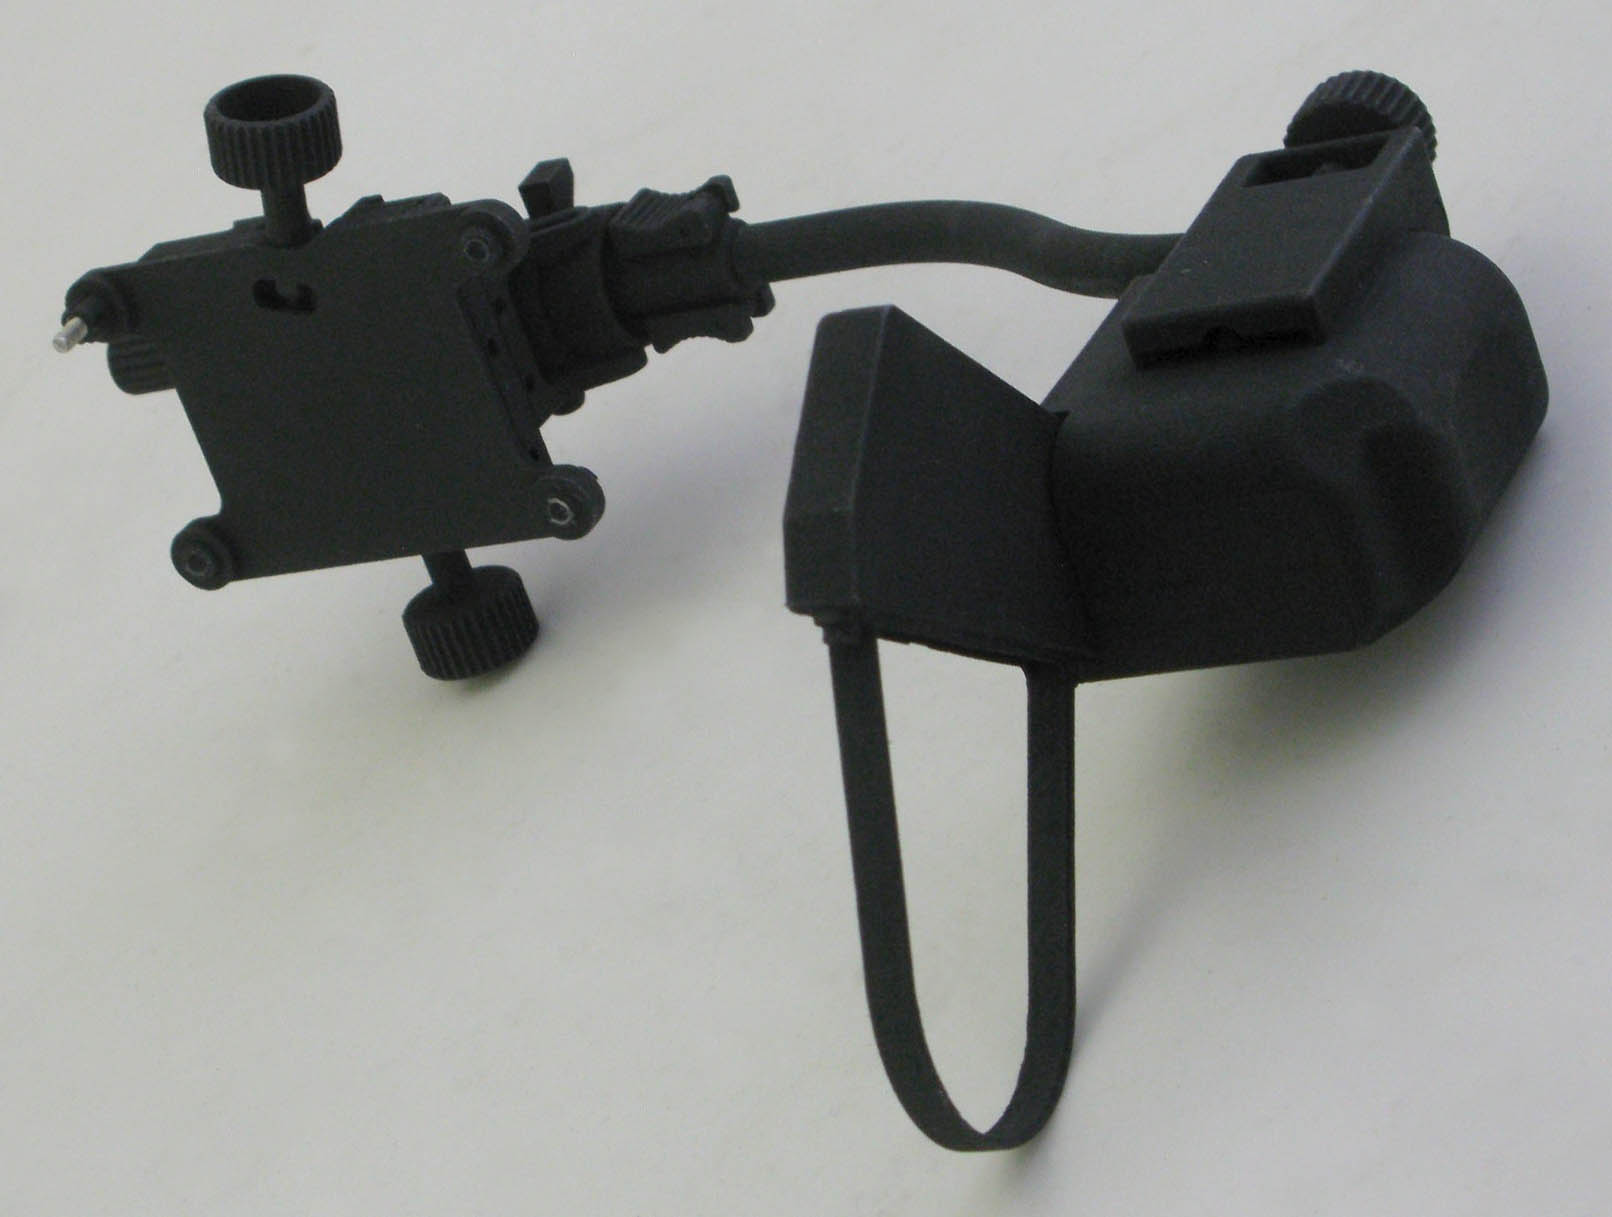 Stereolith model of Q-Sight